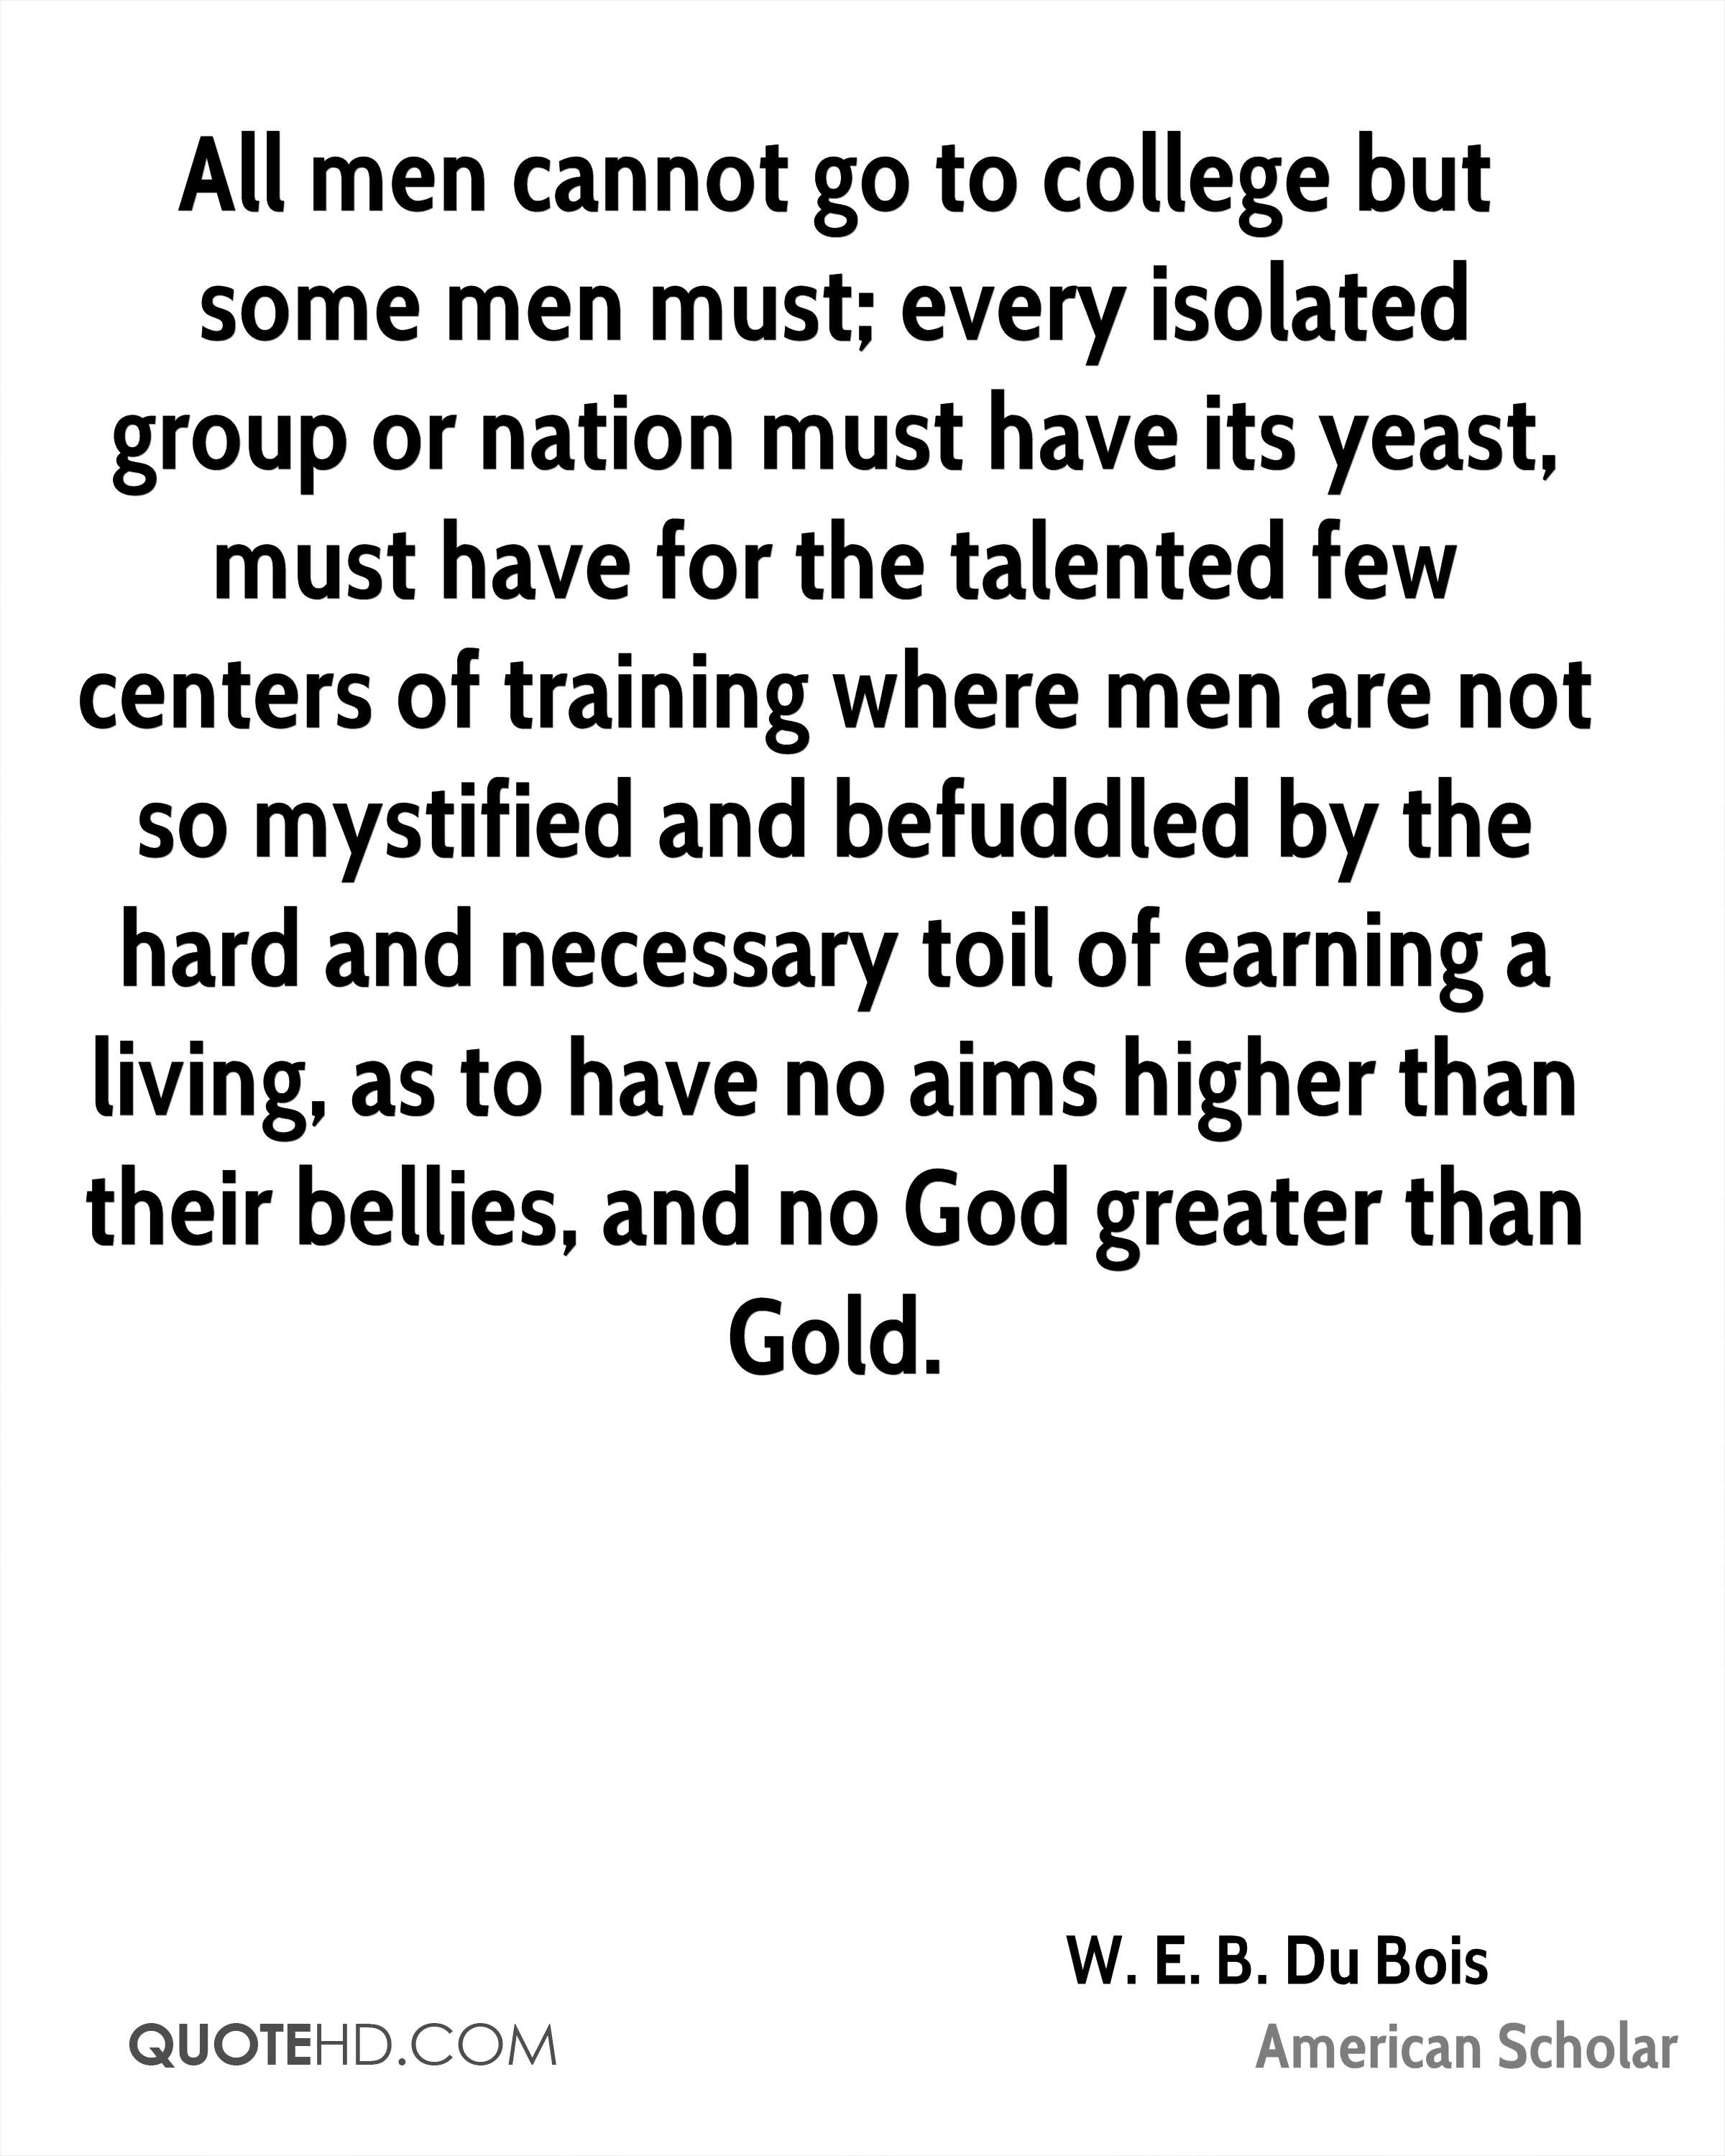 All men cannot go to college but some men must; every isolated group or nation must have its yeast, must have for the talented few centers of training where men are not so mystified and befuddled by the hard and necessary toil of earning a living, as to have no aims higher than their bellies, and no God greater than Gold.